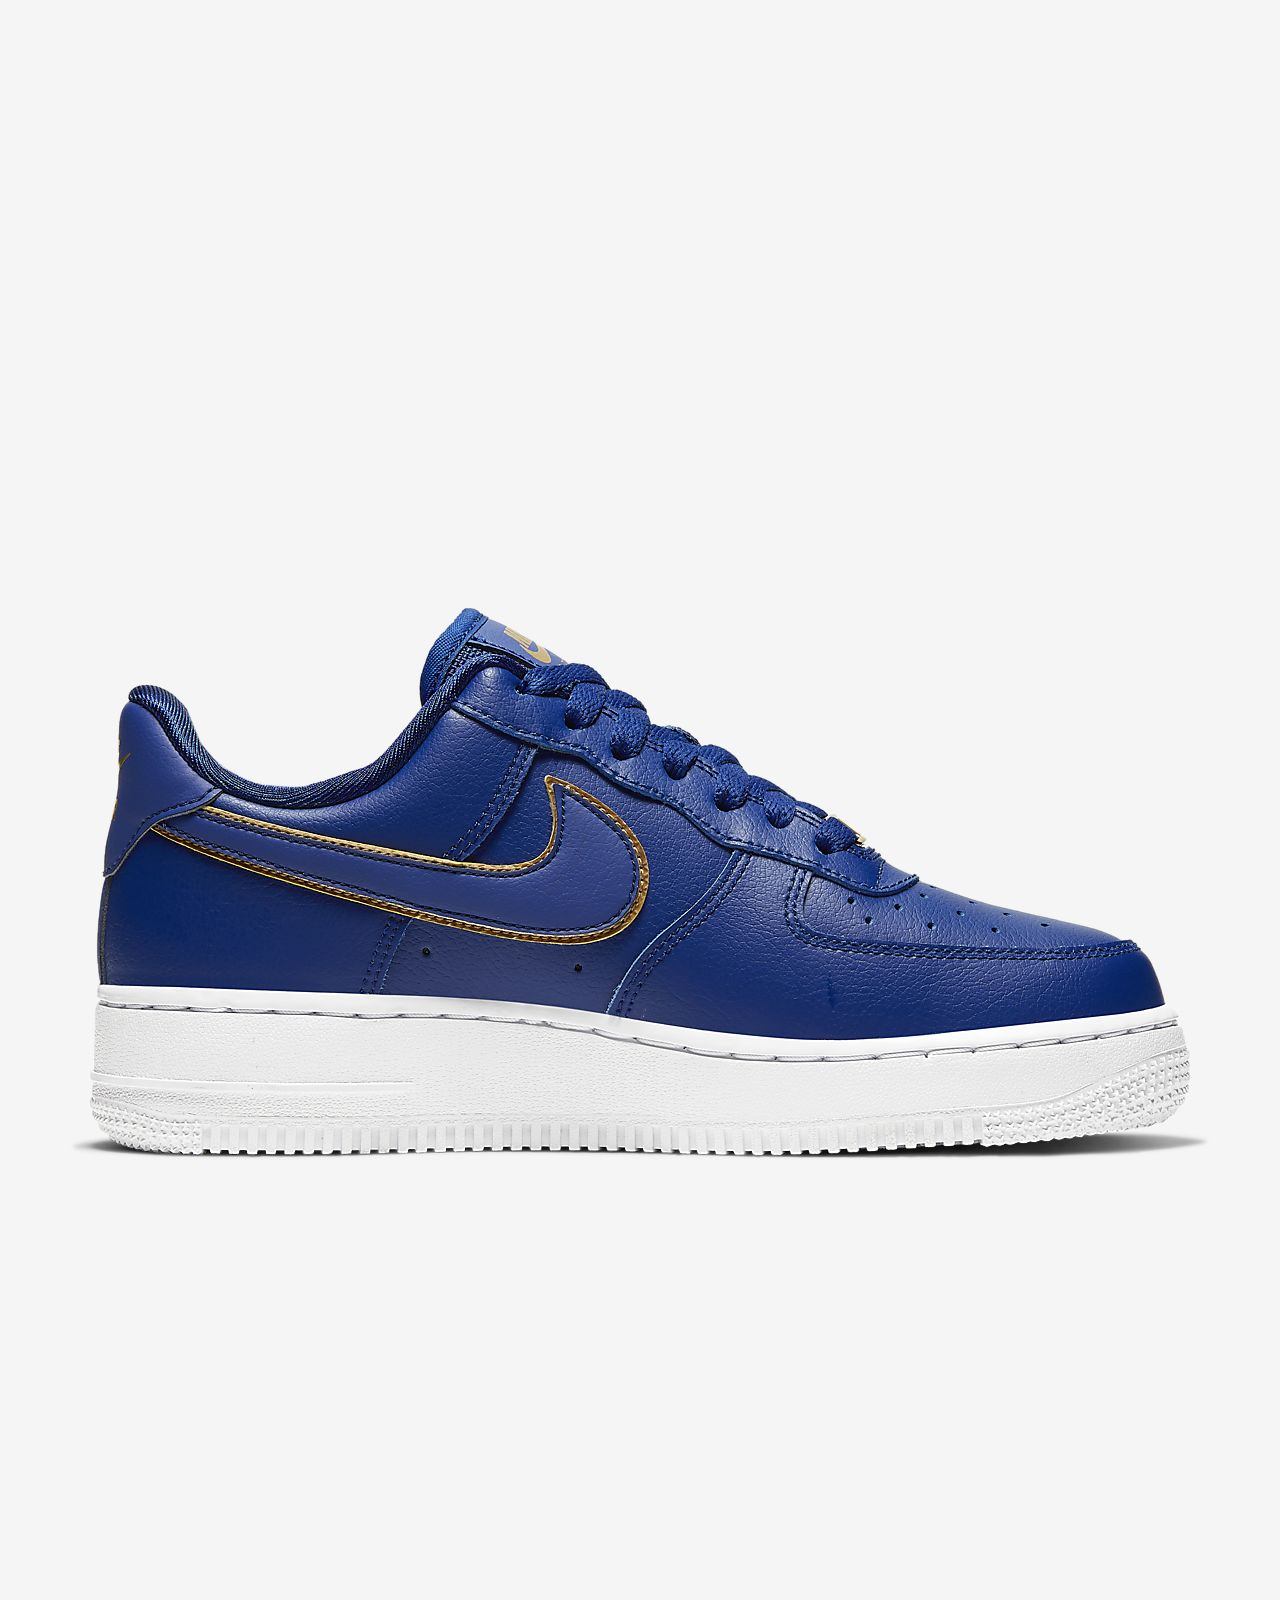 Zapatillas Nike Air Force One De Mujer